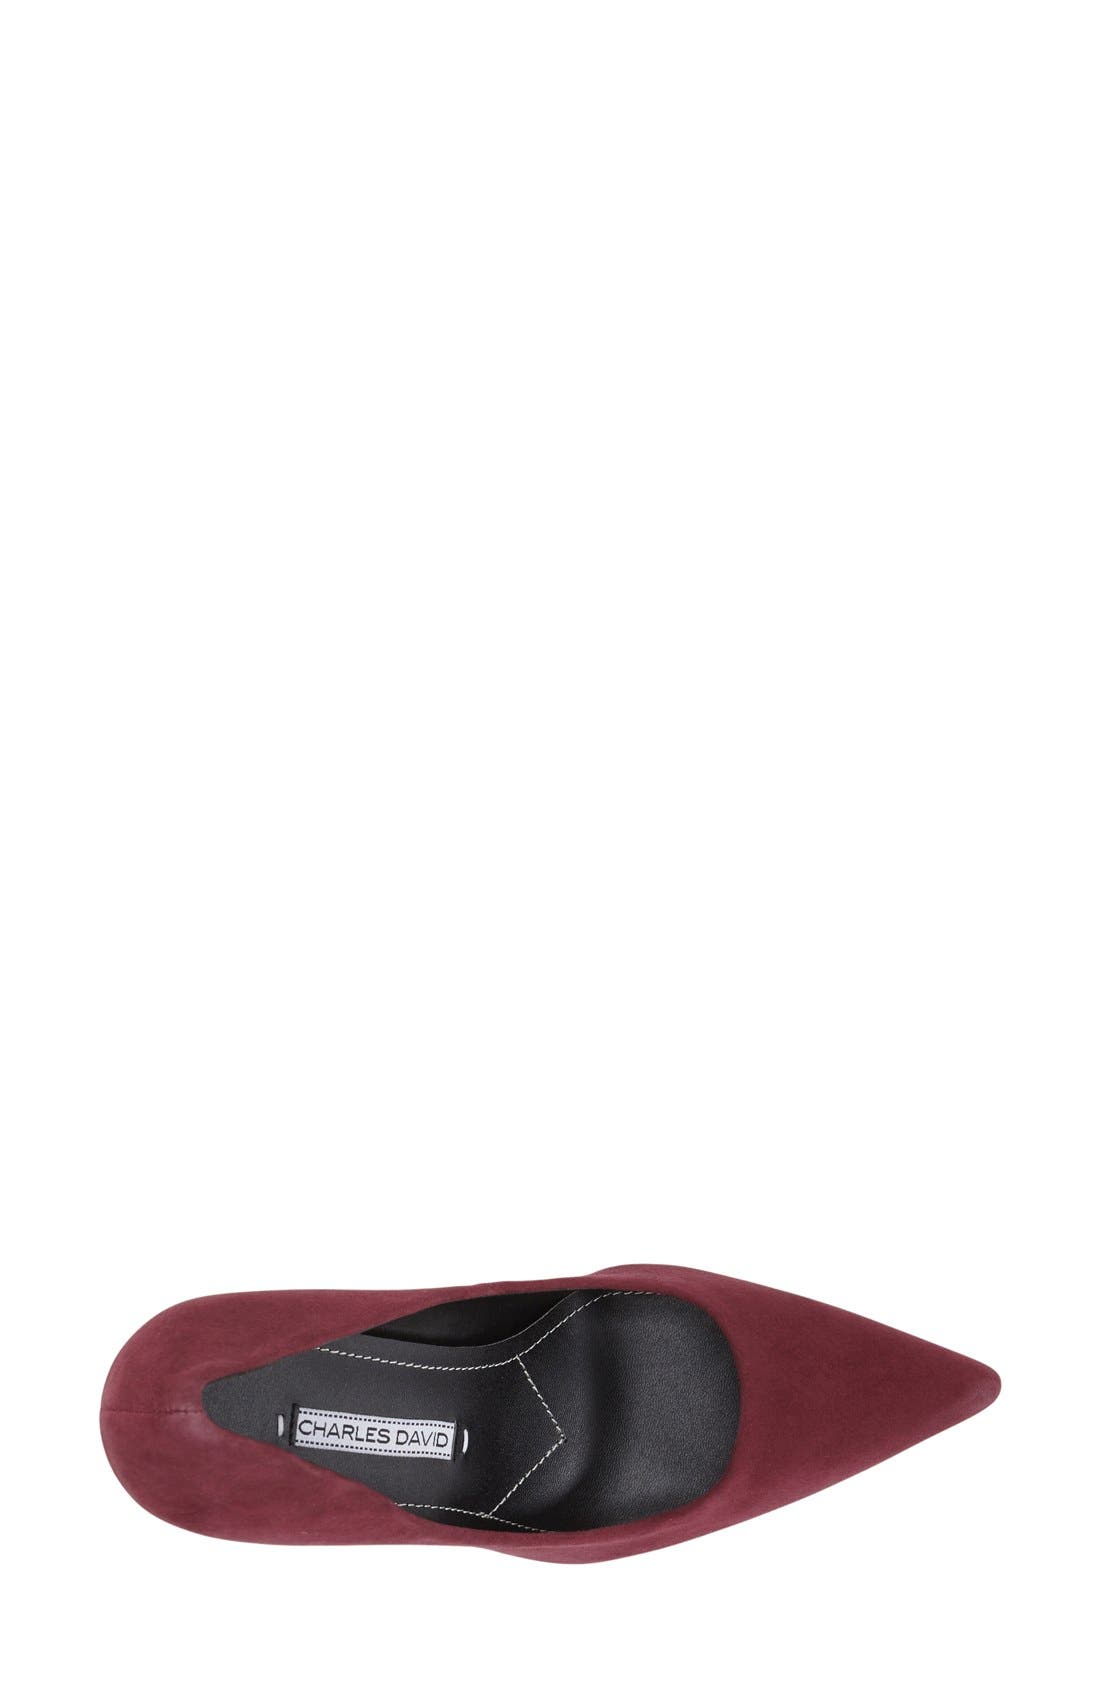 Charles David 'Sway II' Patent Leather Pump,                             Alternate thumbnail 3, color,                             Burgundy Suede